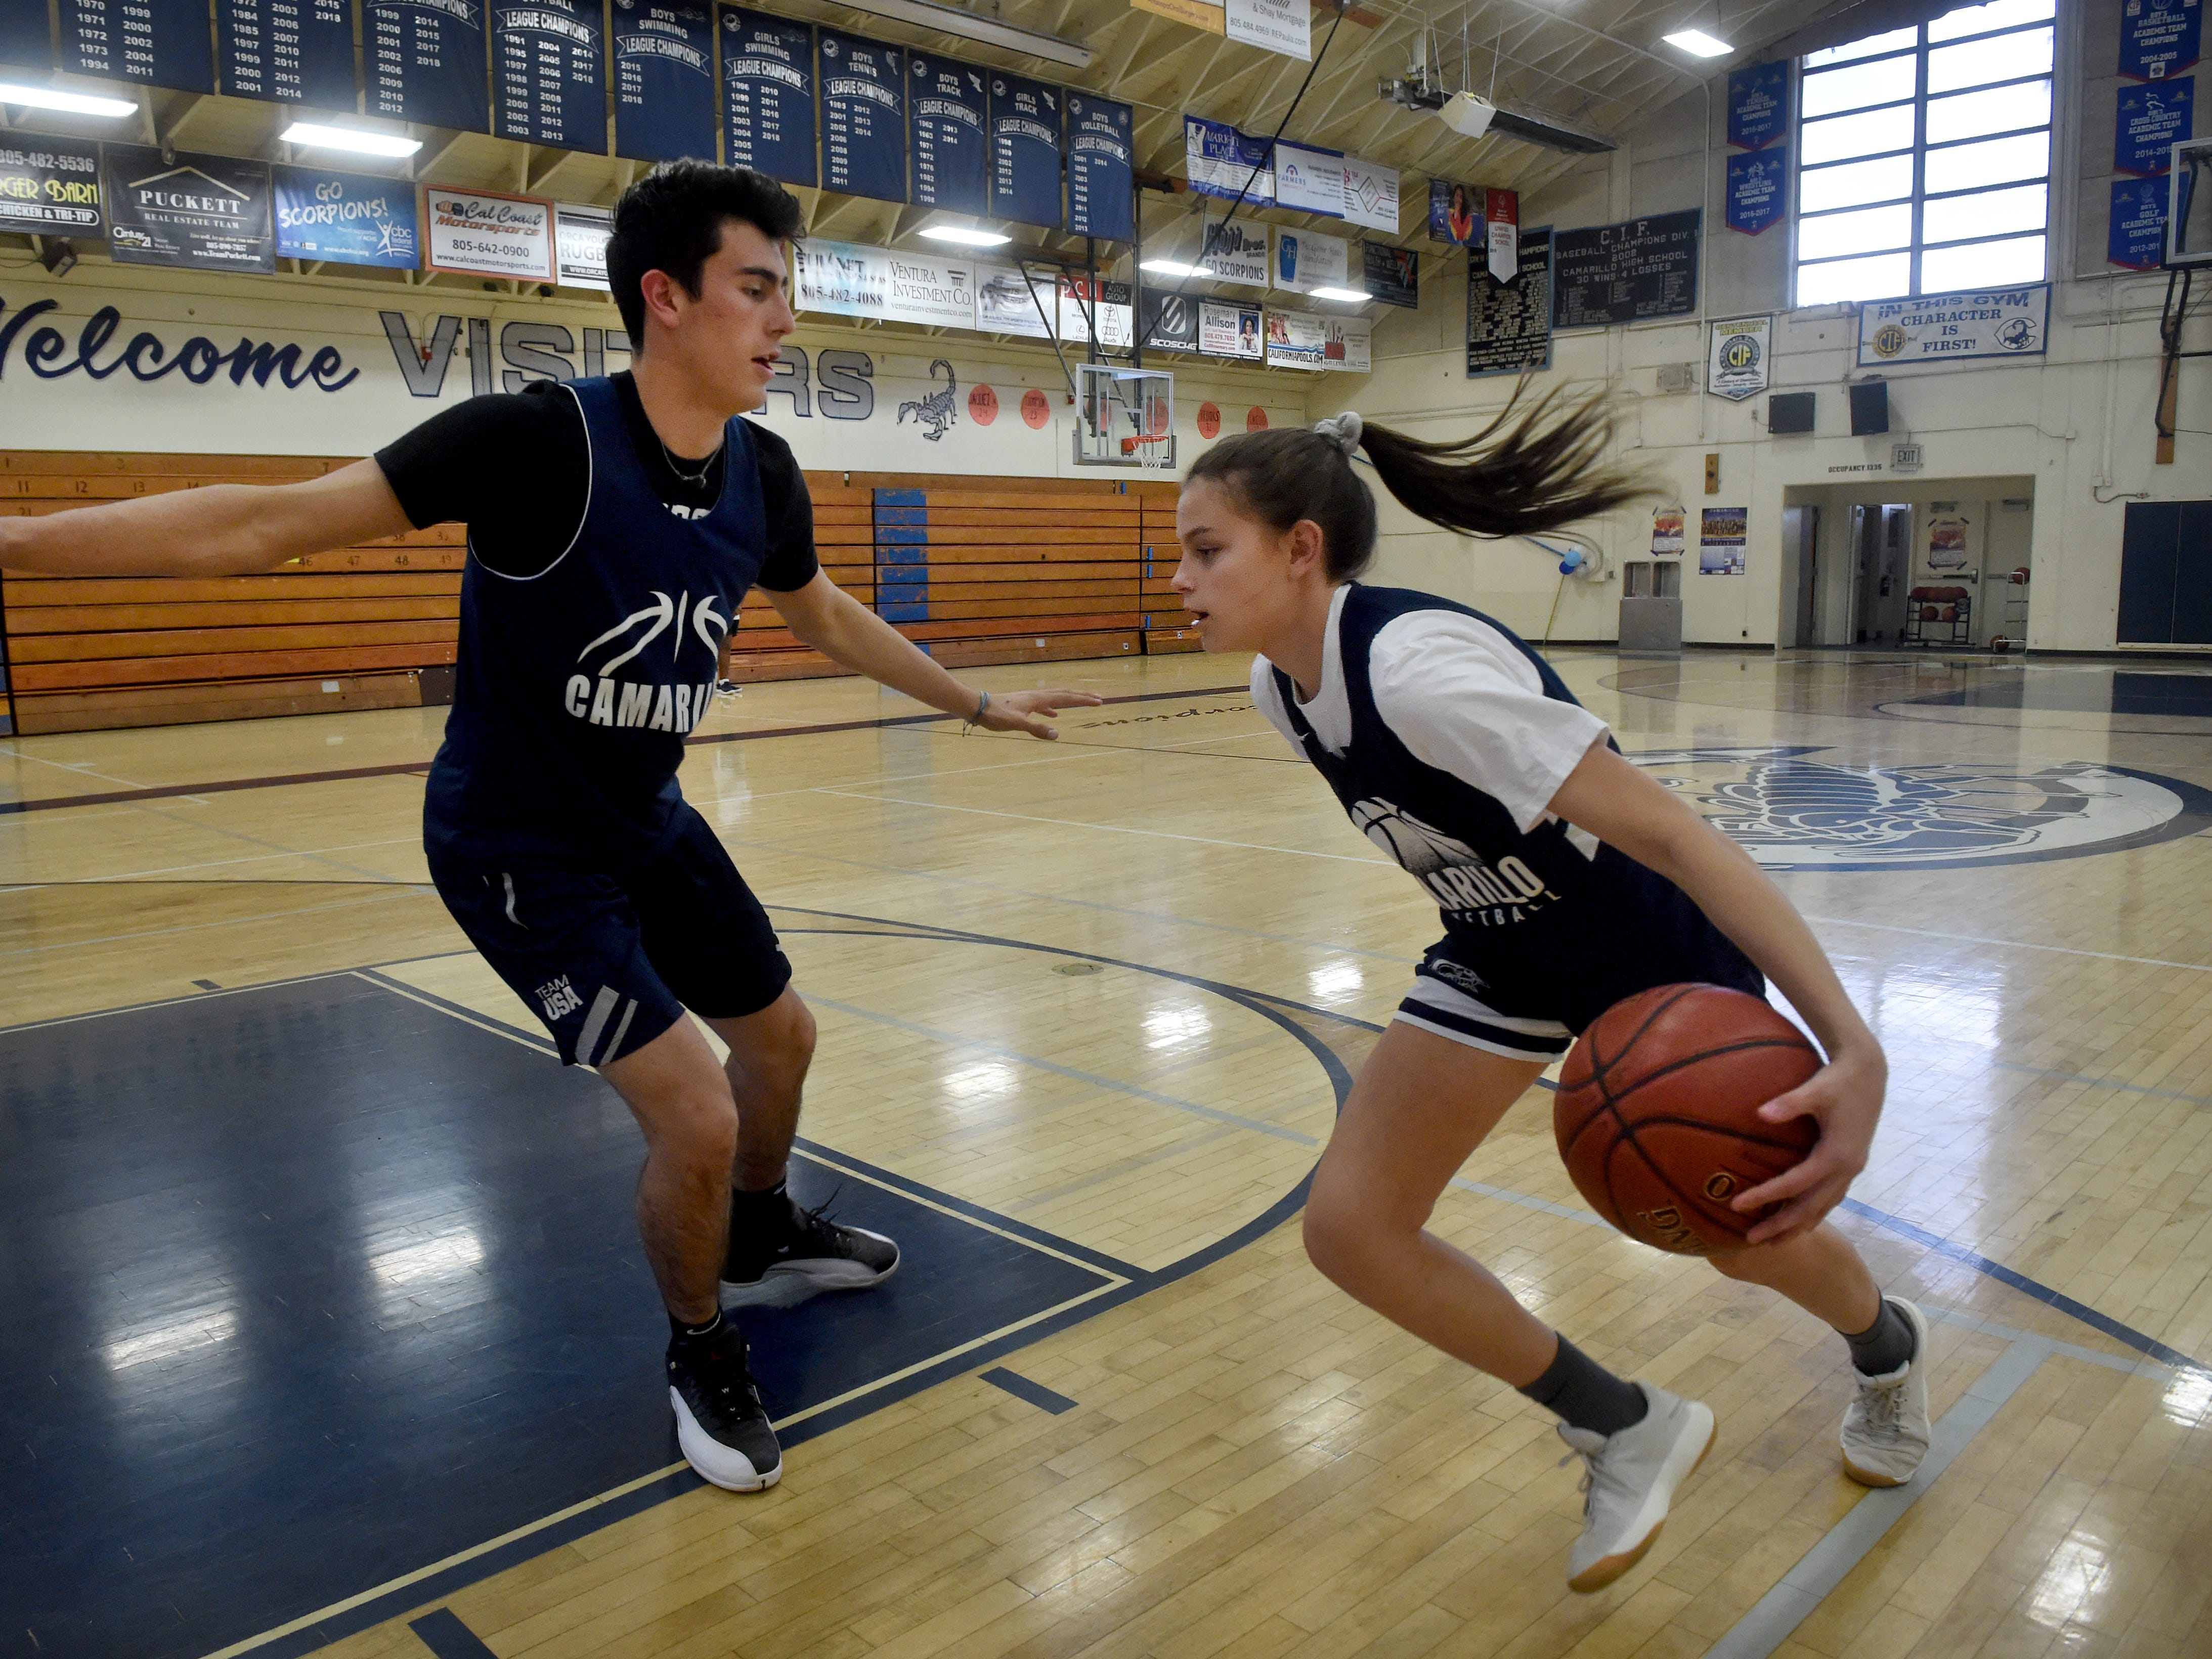 """Gabriela Jaquez, a freshman at Camarillo High, knows trying to beat her older brother Jaime Jr., a senior at Camarillo who is headed to UCLA, on the basketball court is nearly impossible. """"But it's all about learning and getting better. It helps me to improve,"""" she says of the one-on-one games."""